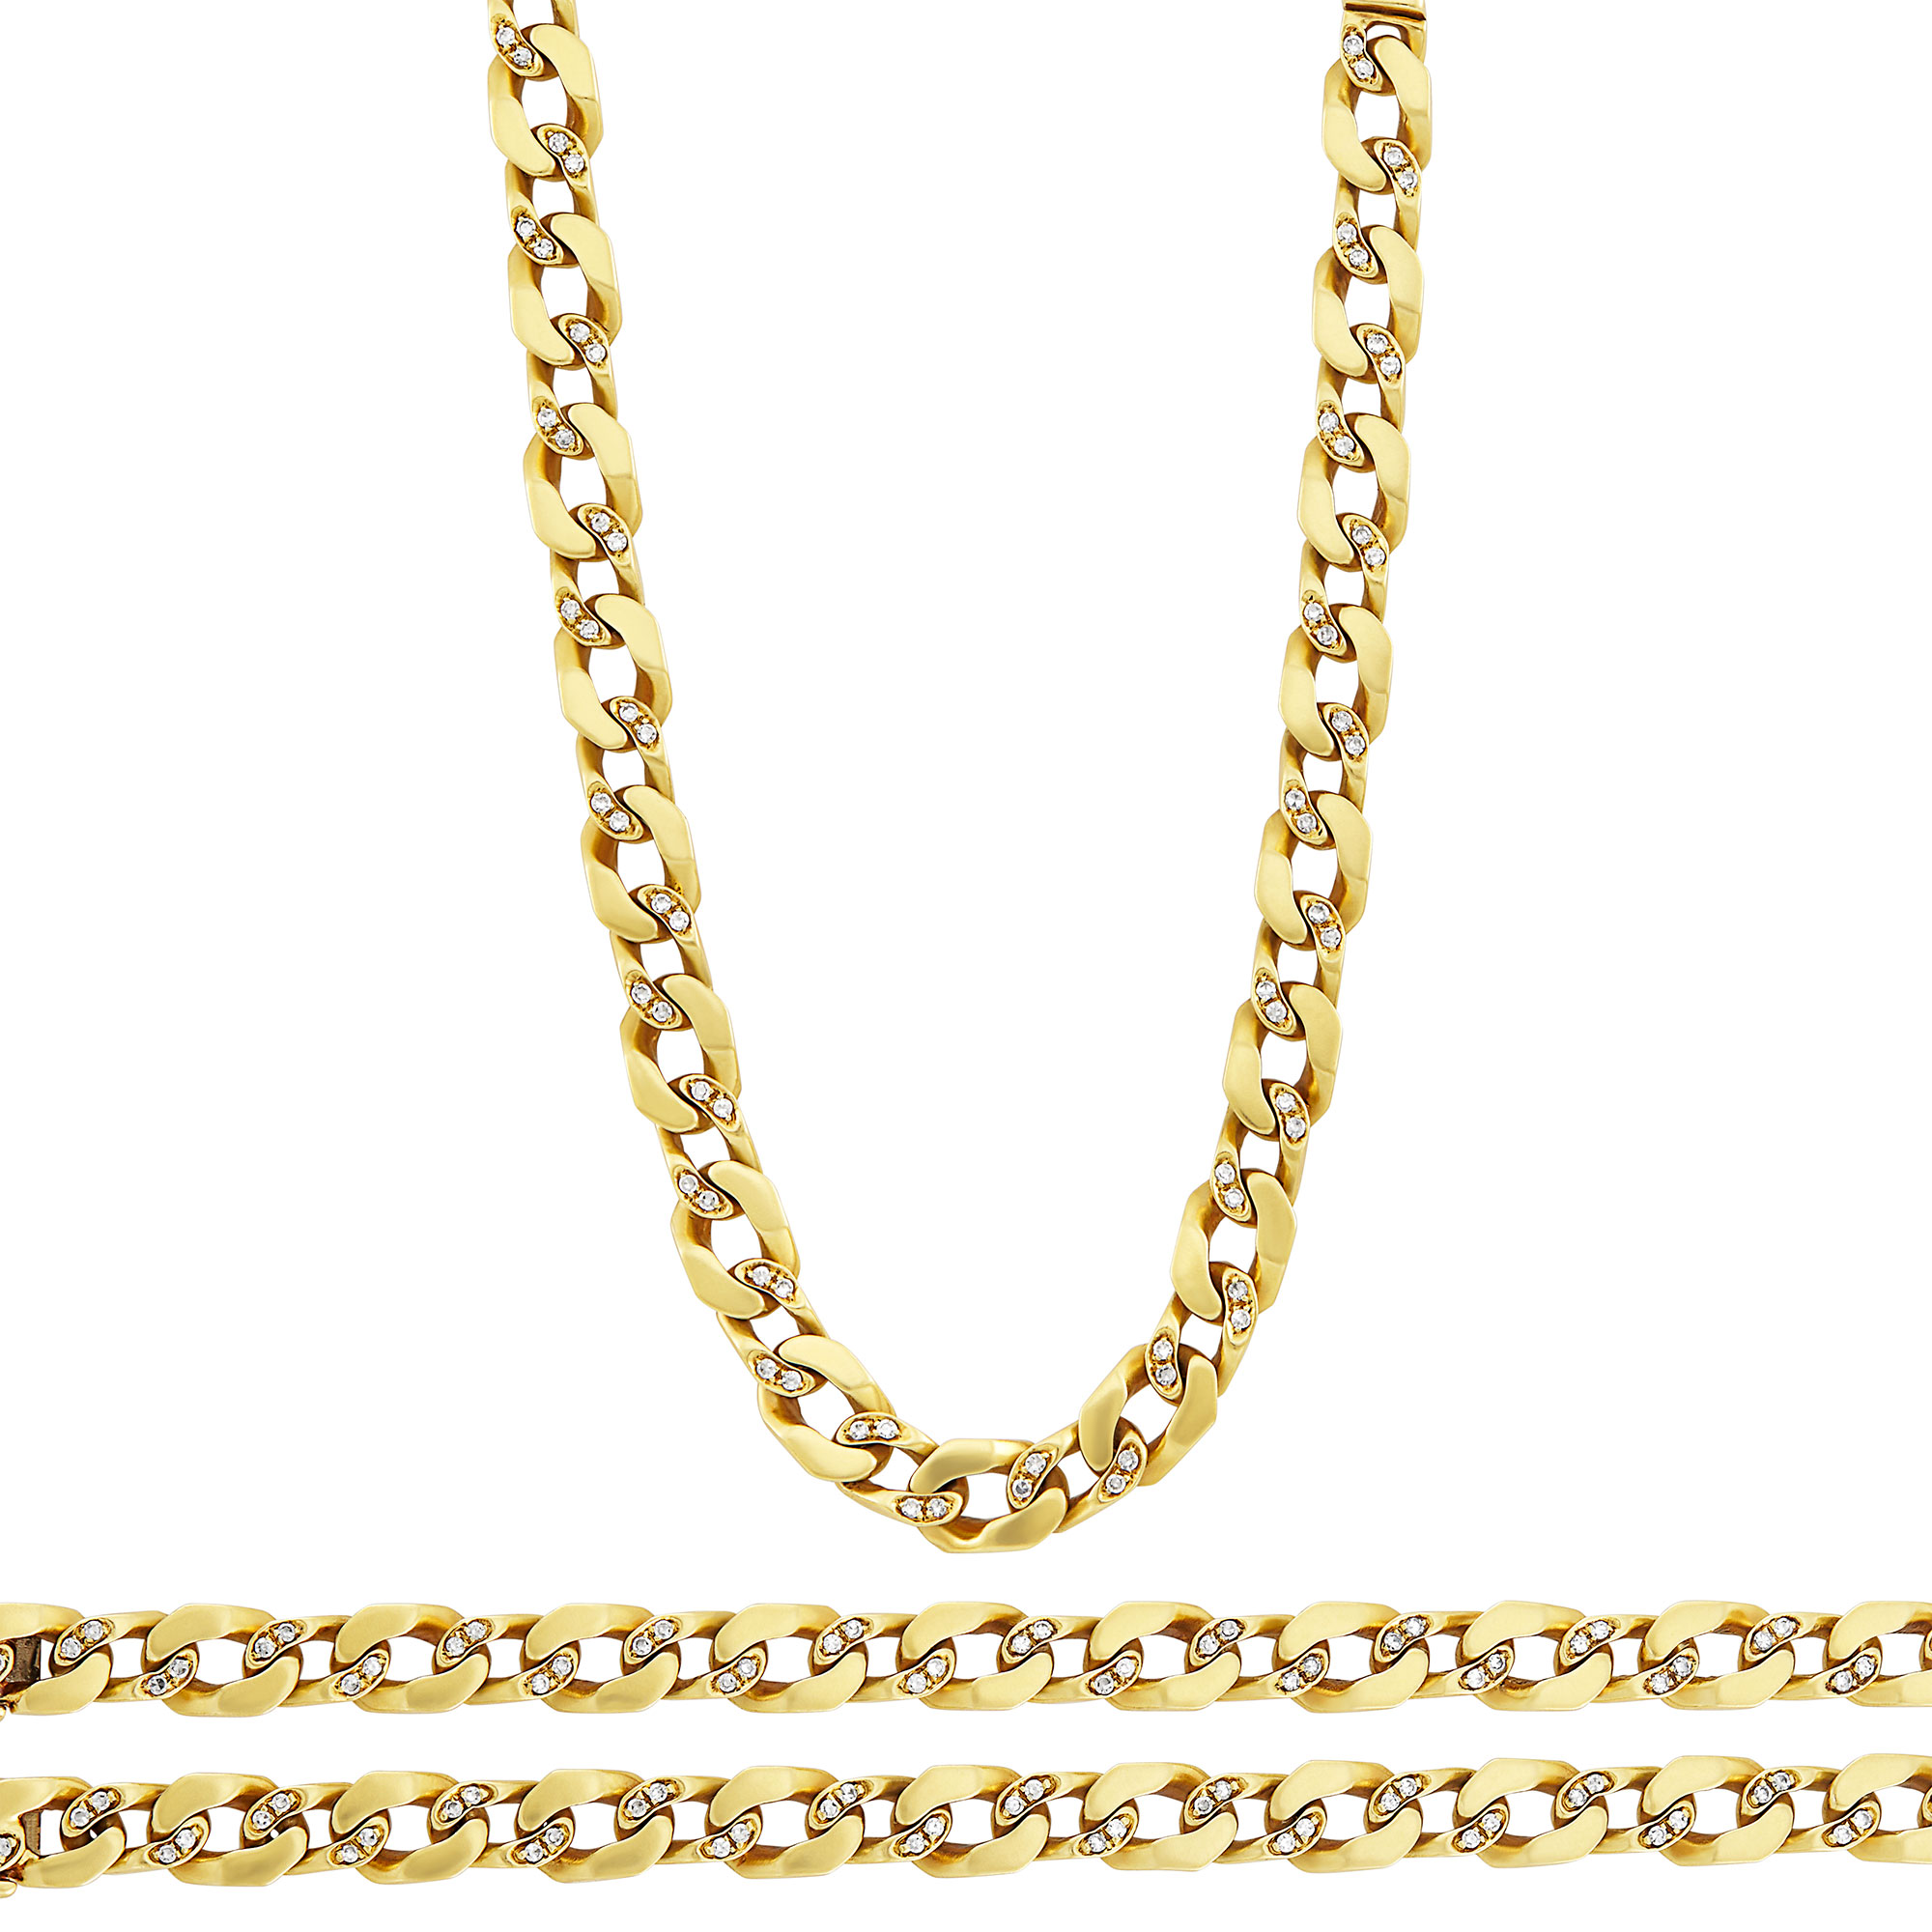 Lot image - Gold and Diamond Curb Link Necklace/Bracelets Combination